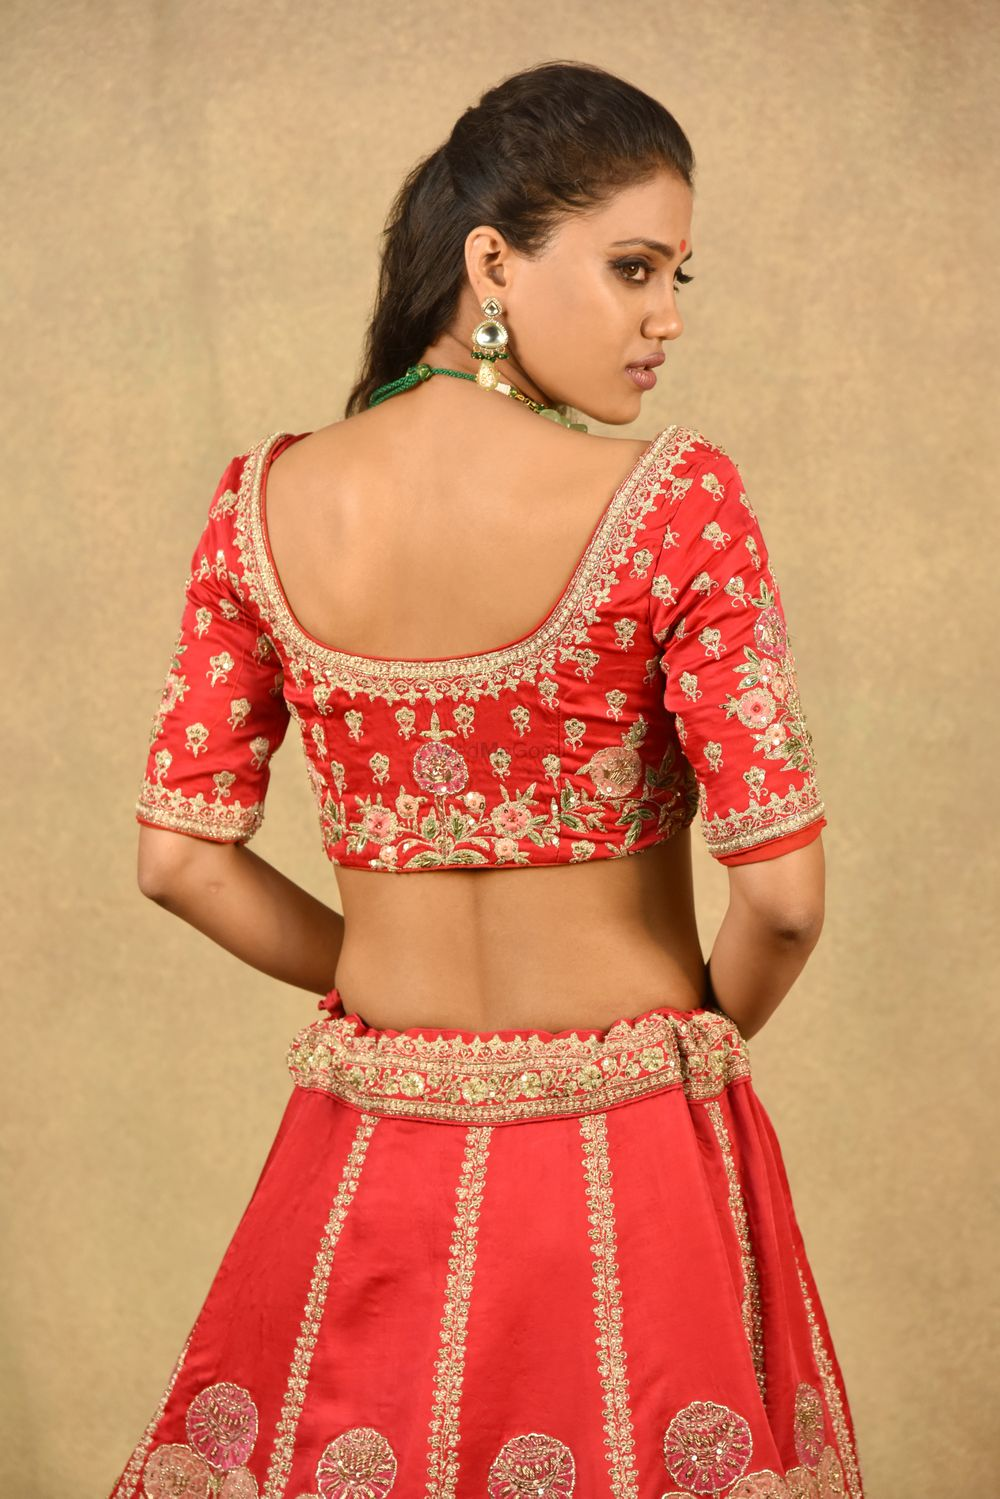 Photo From our new collection - By Kala Shree Regalia